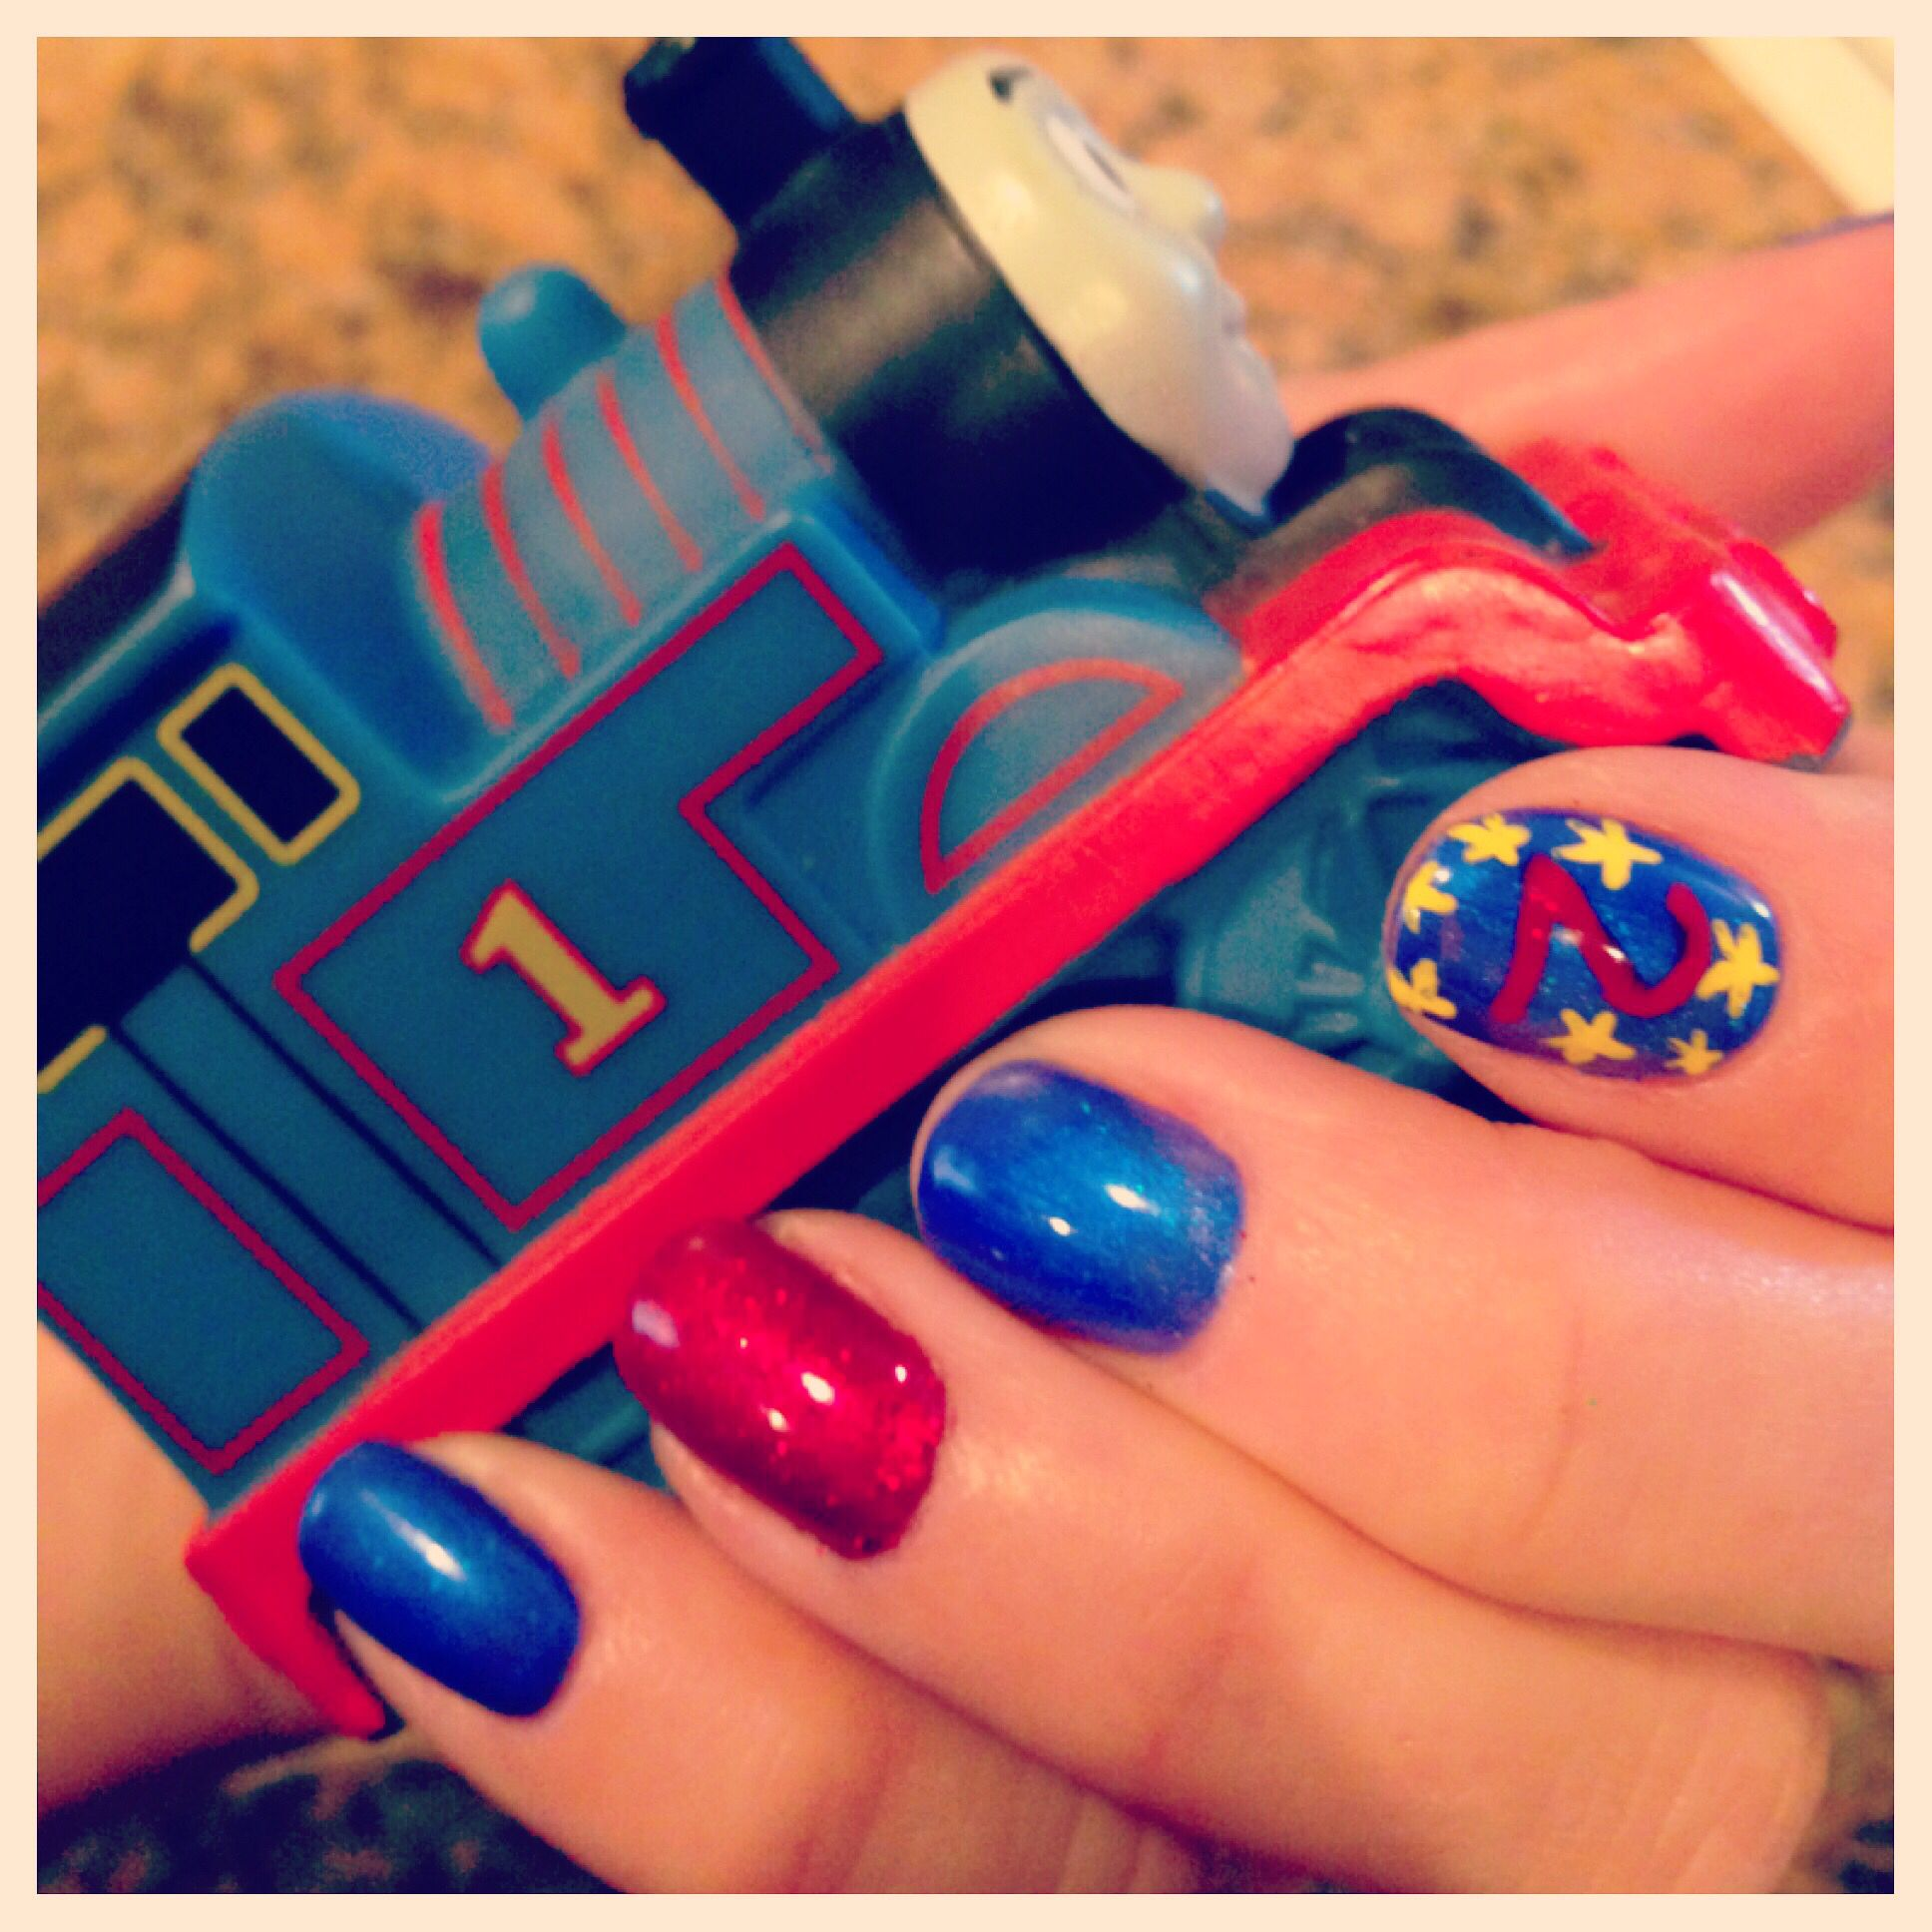 Thomas The Train Gel Nails Nails Ive Done Pinterest Nails